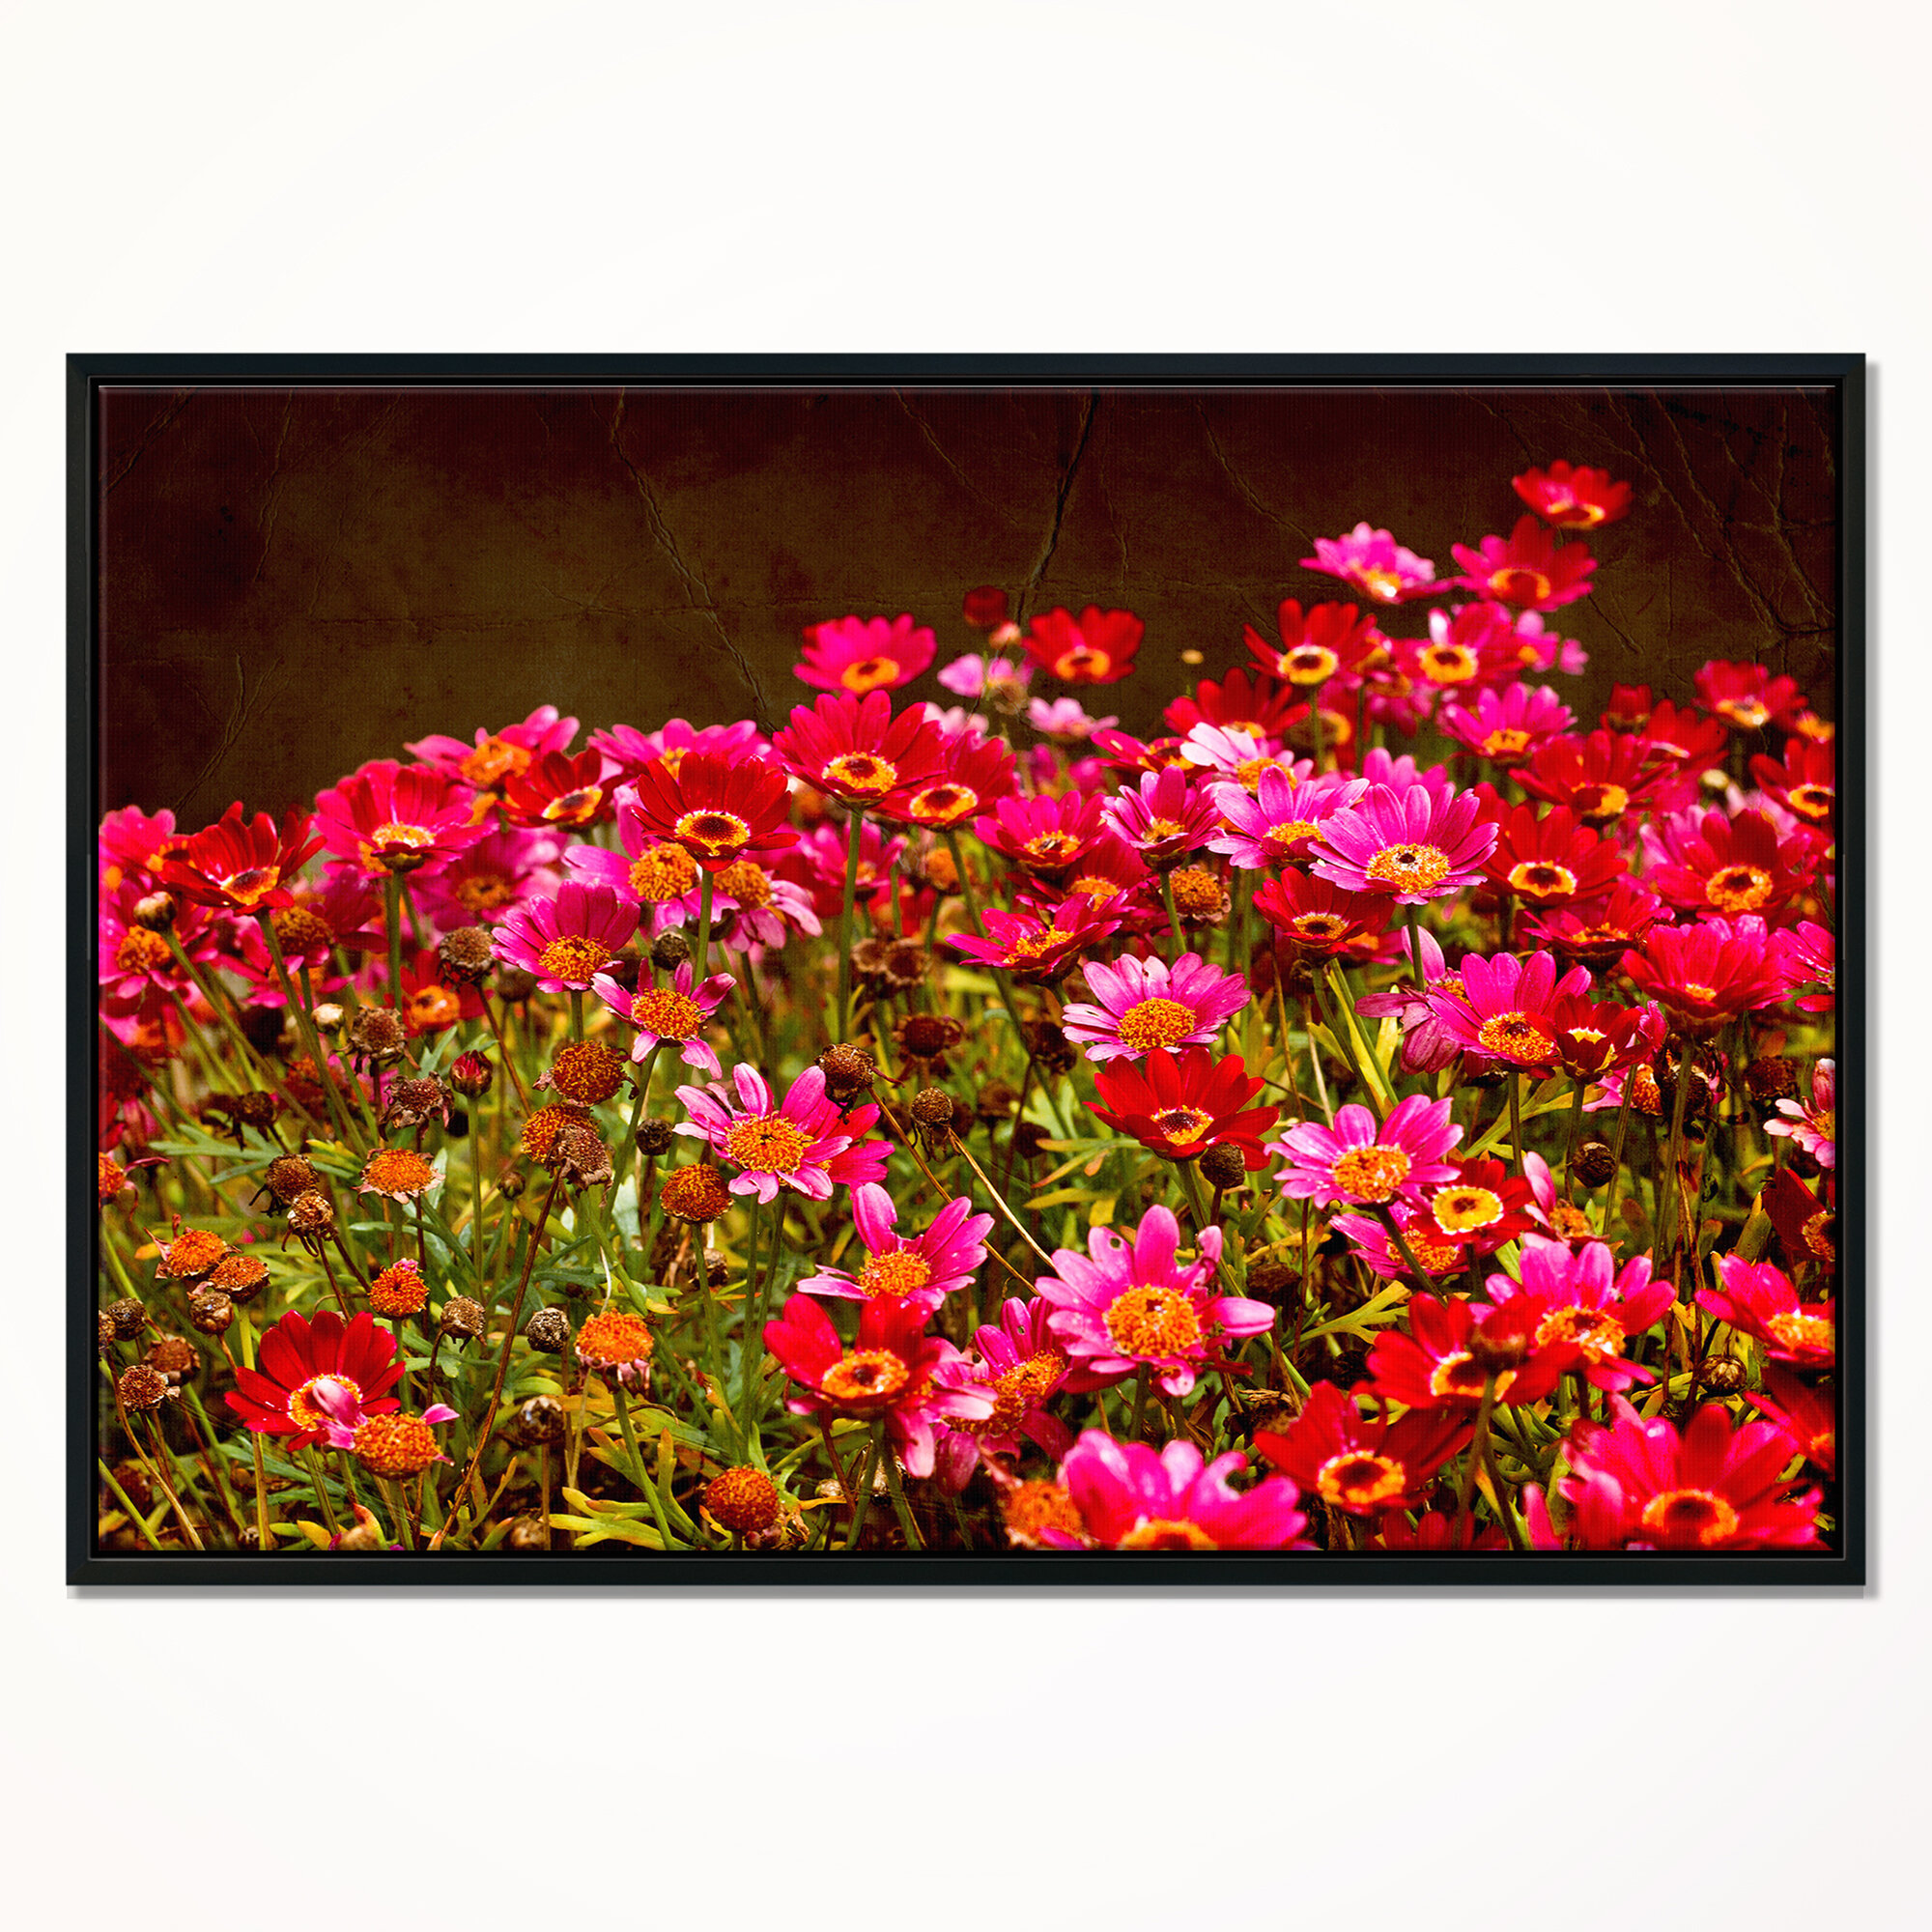 East Urban Home Small Red Flowers In Spring Photo Framed